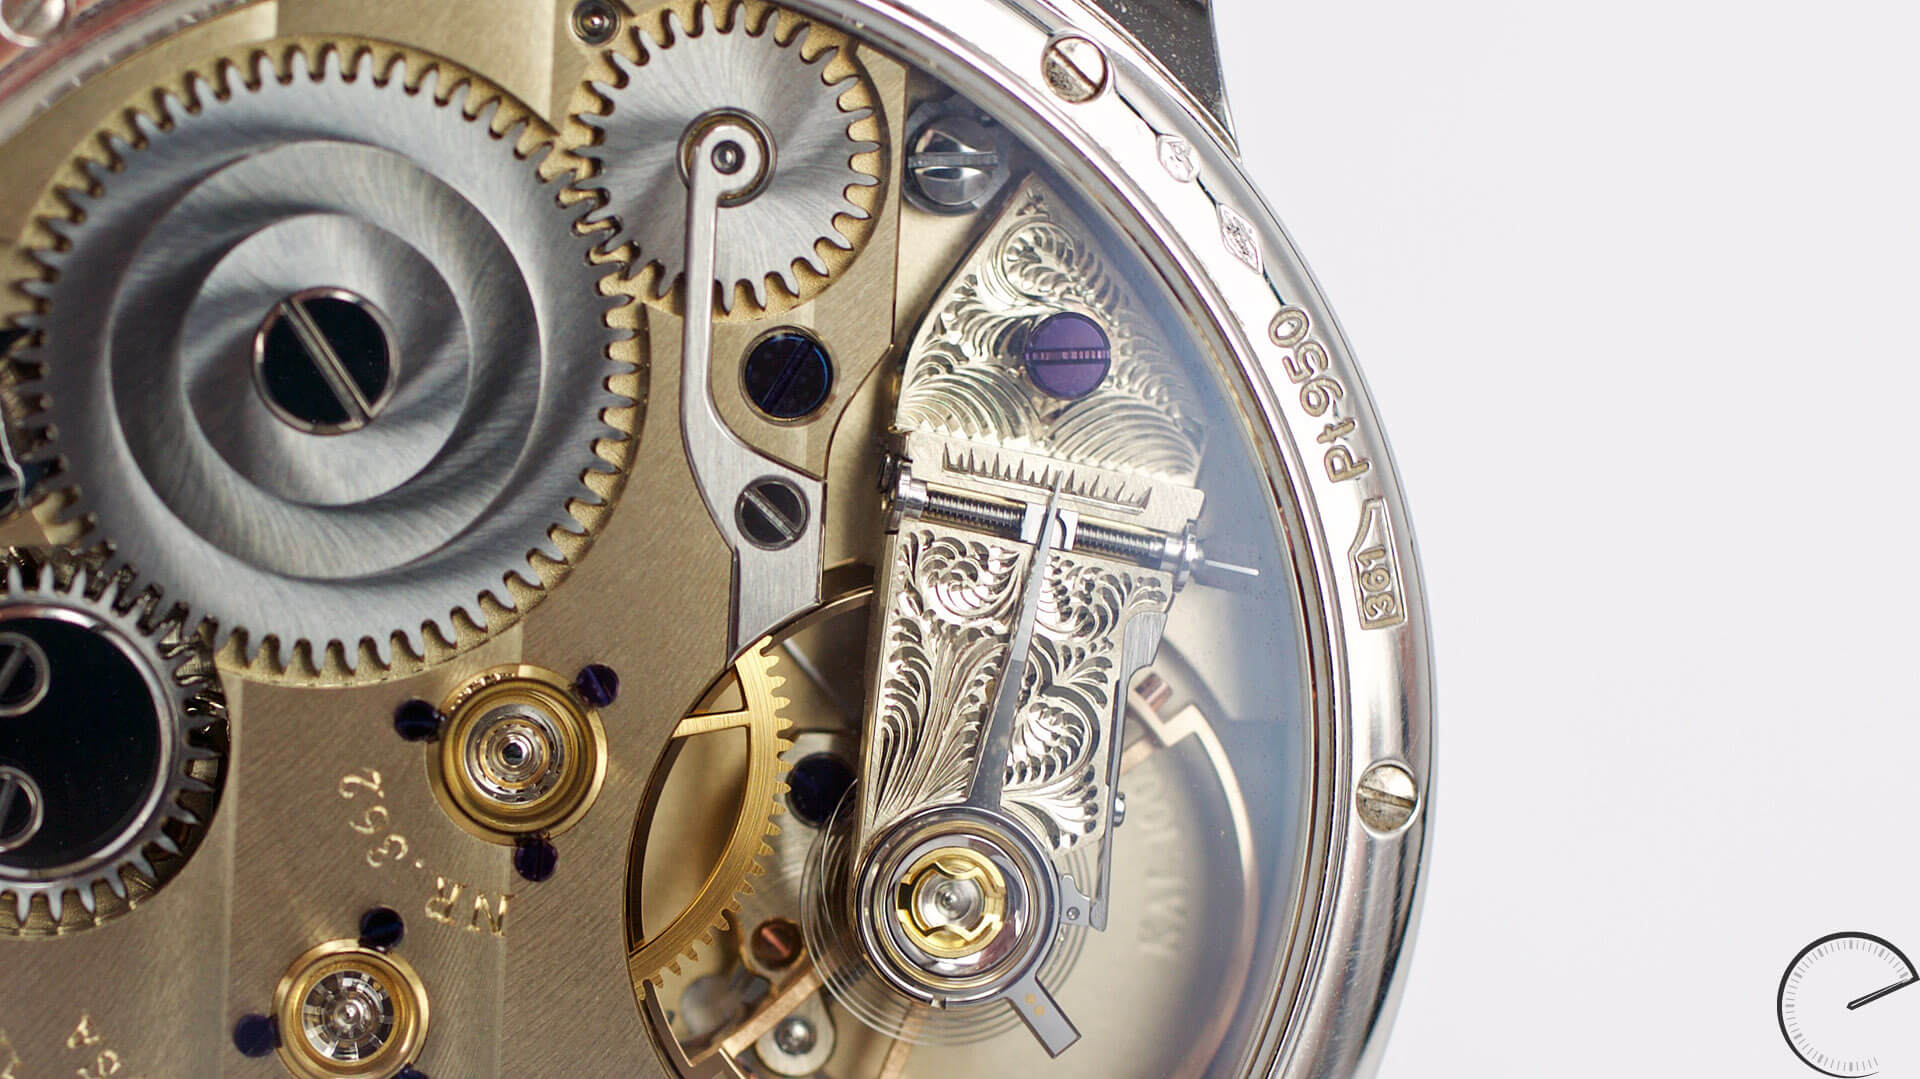 Moritz_Grossmann_BENU_Power_Reserve_balance_cock - ESCAPEMENT watch articles by Angus Davies